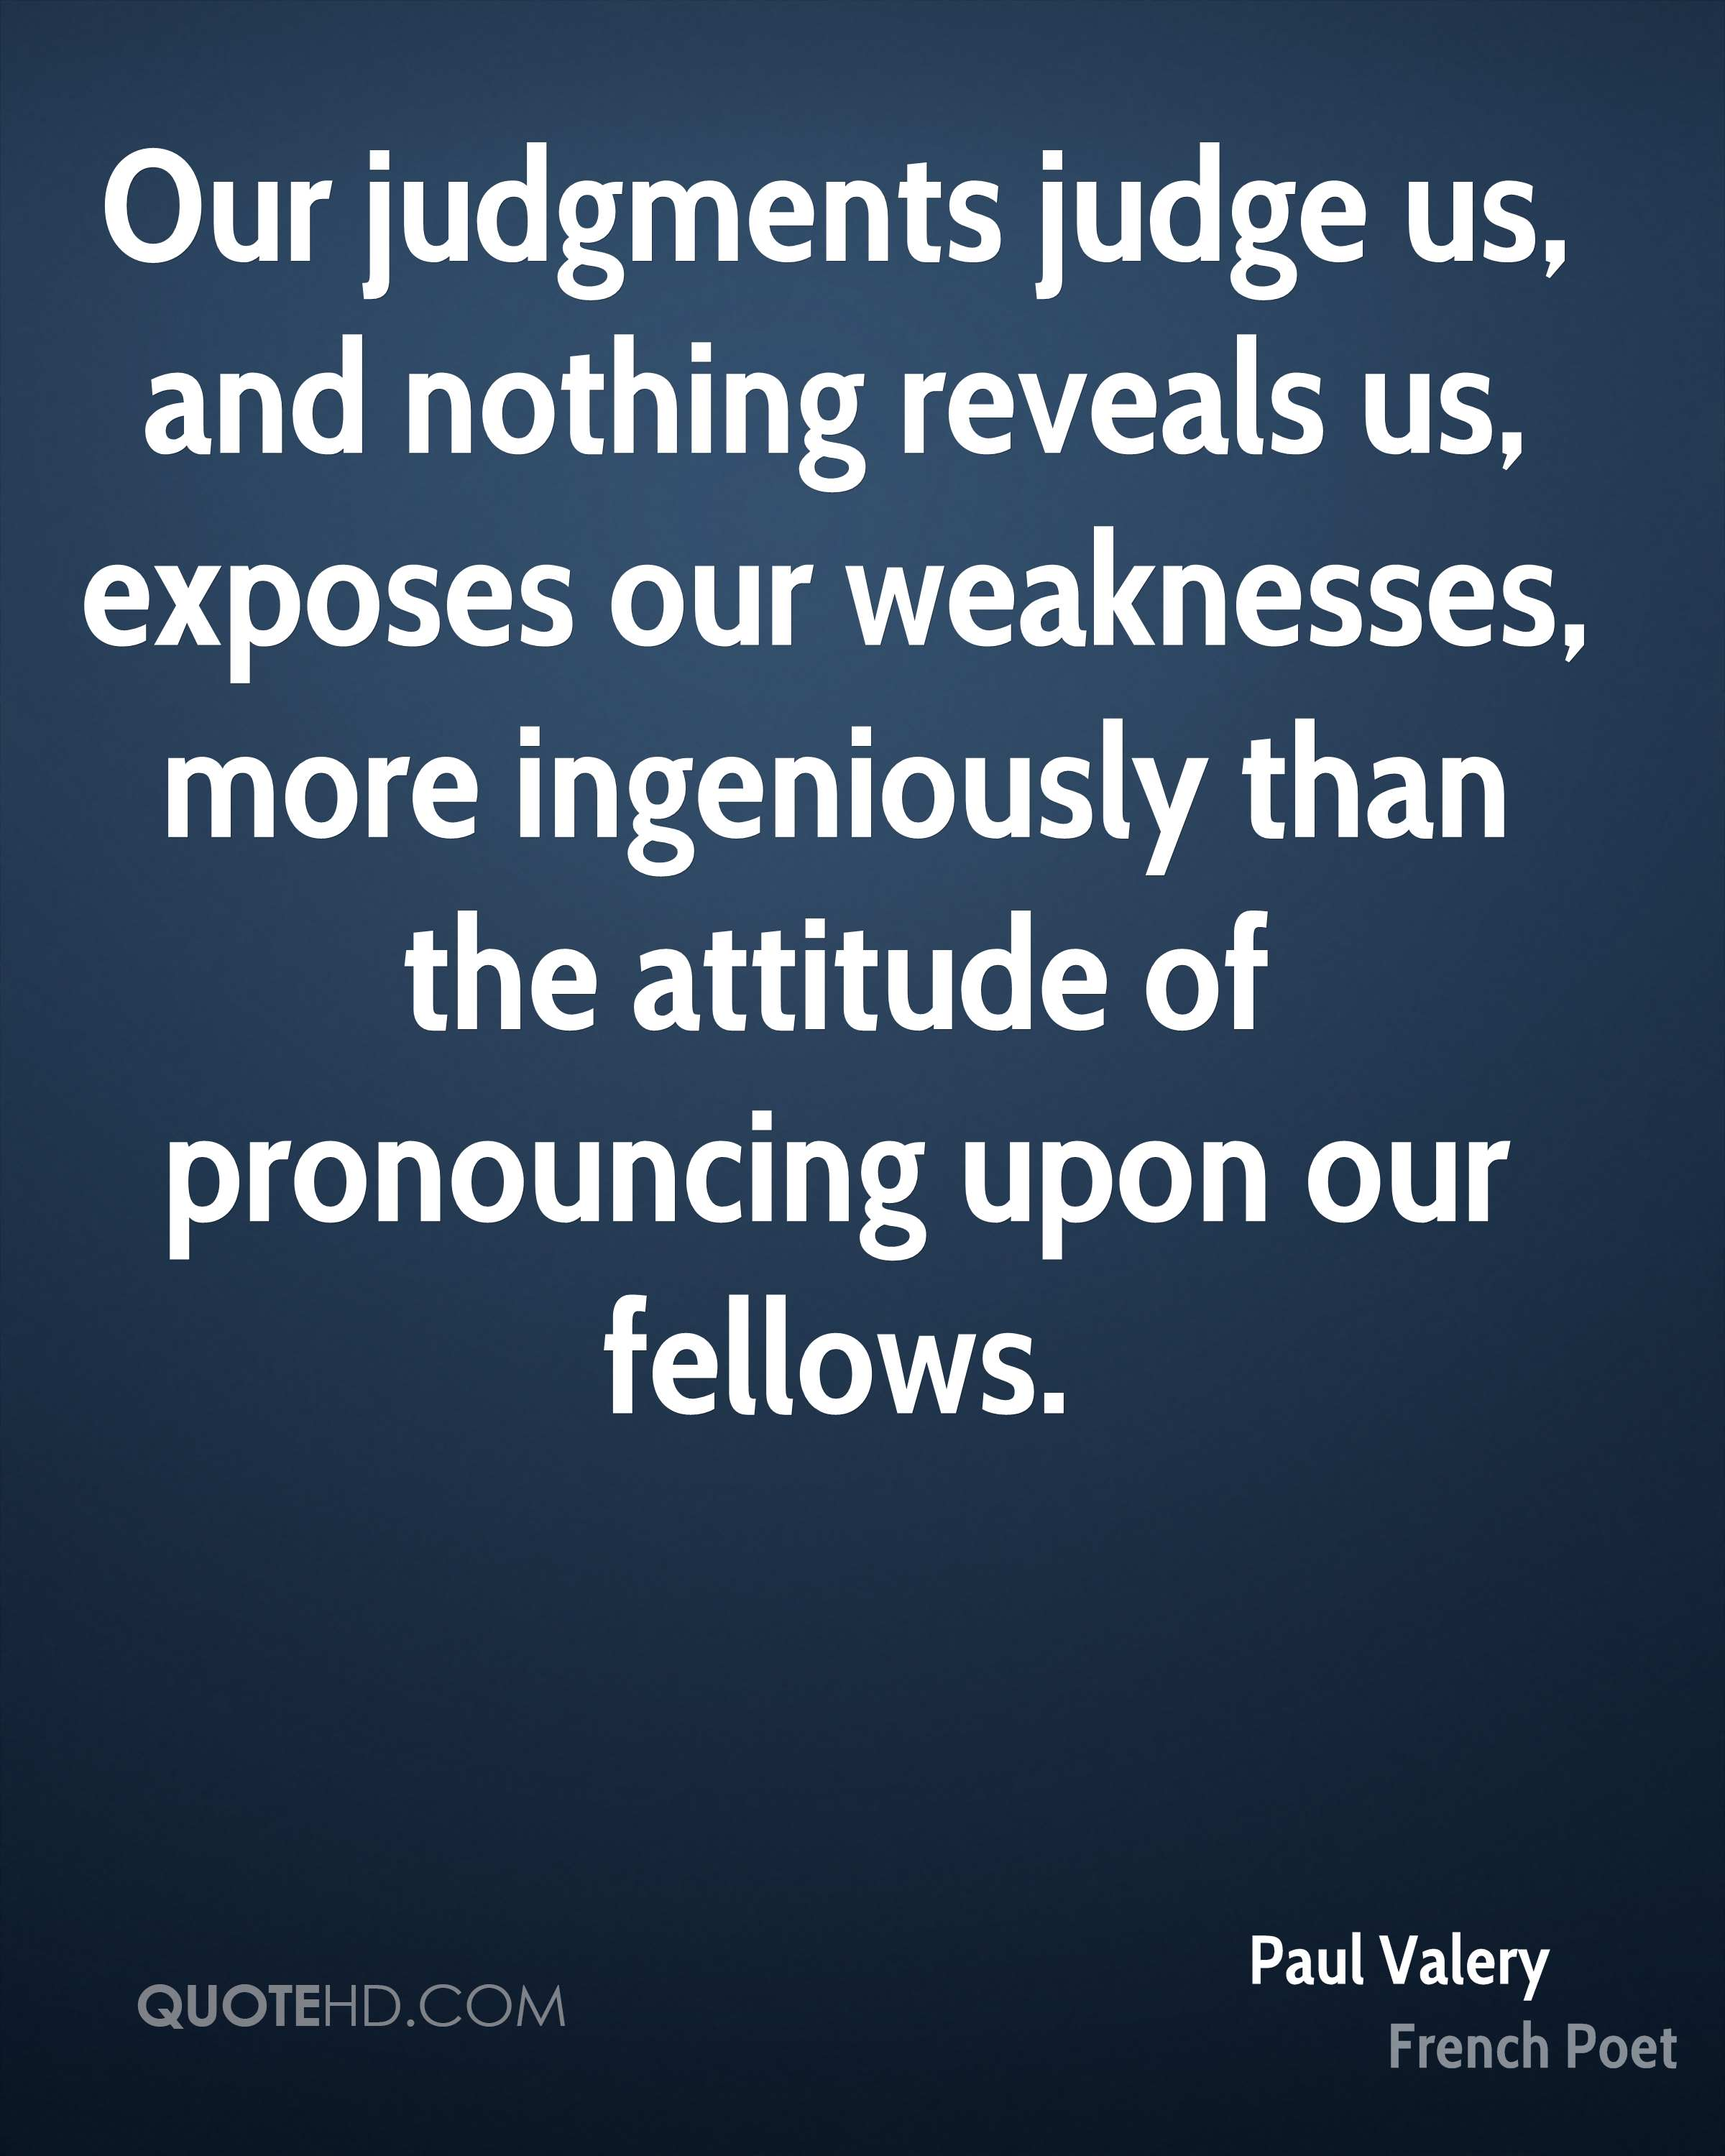 Our judgments judge us, and nothing reveals us, exposes our weaknesses, more ingeniously than the attitude of pronouncing upon our fellows.